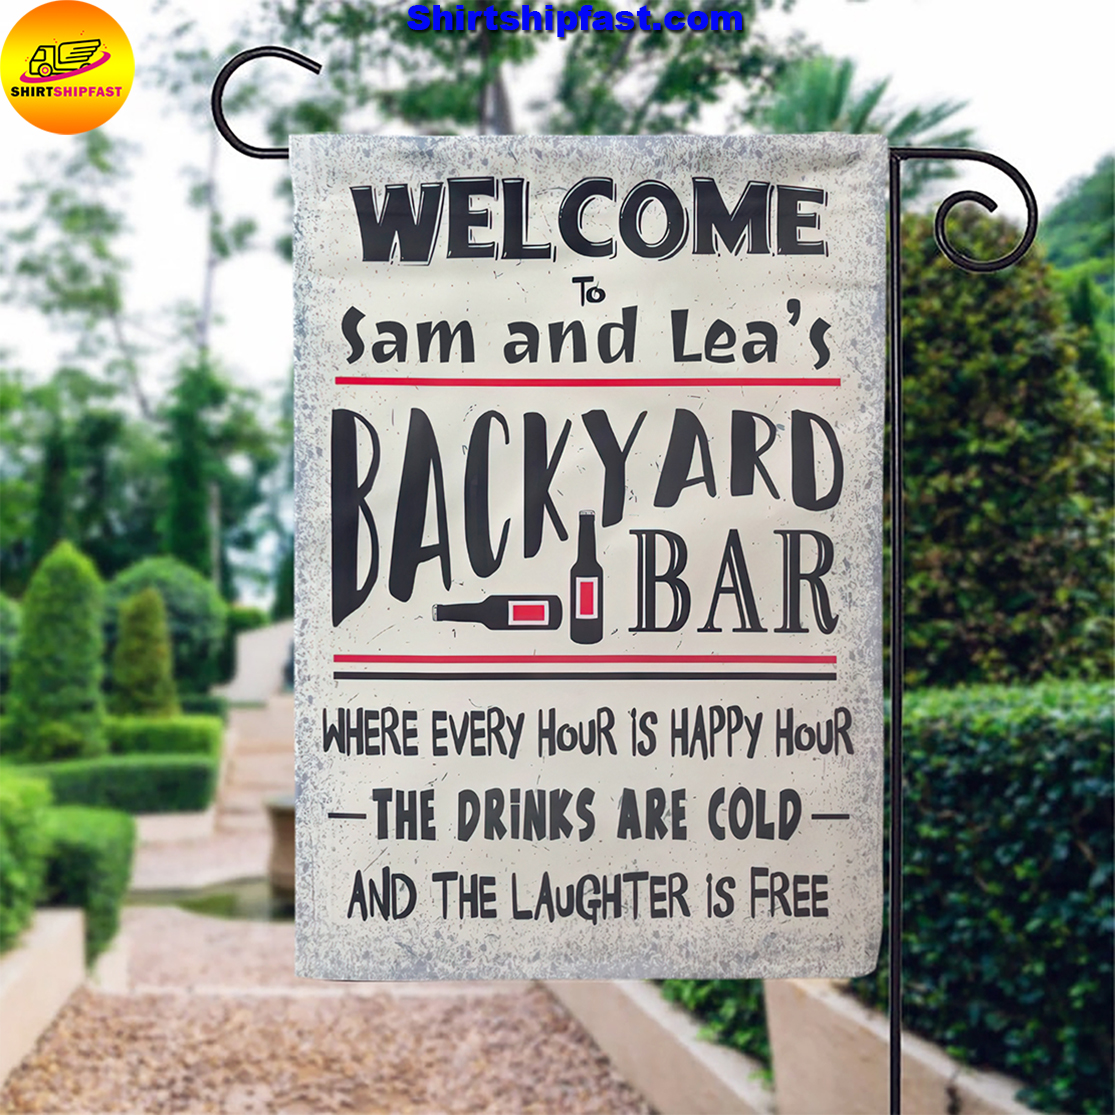 Personalized Welcome to backyard bar flag - Picture 3